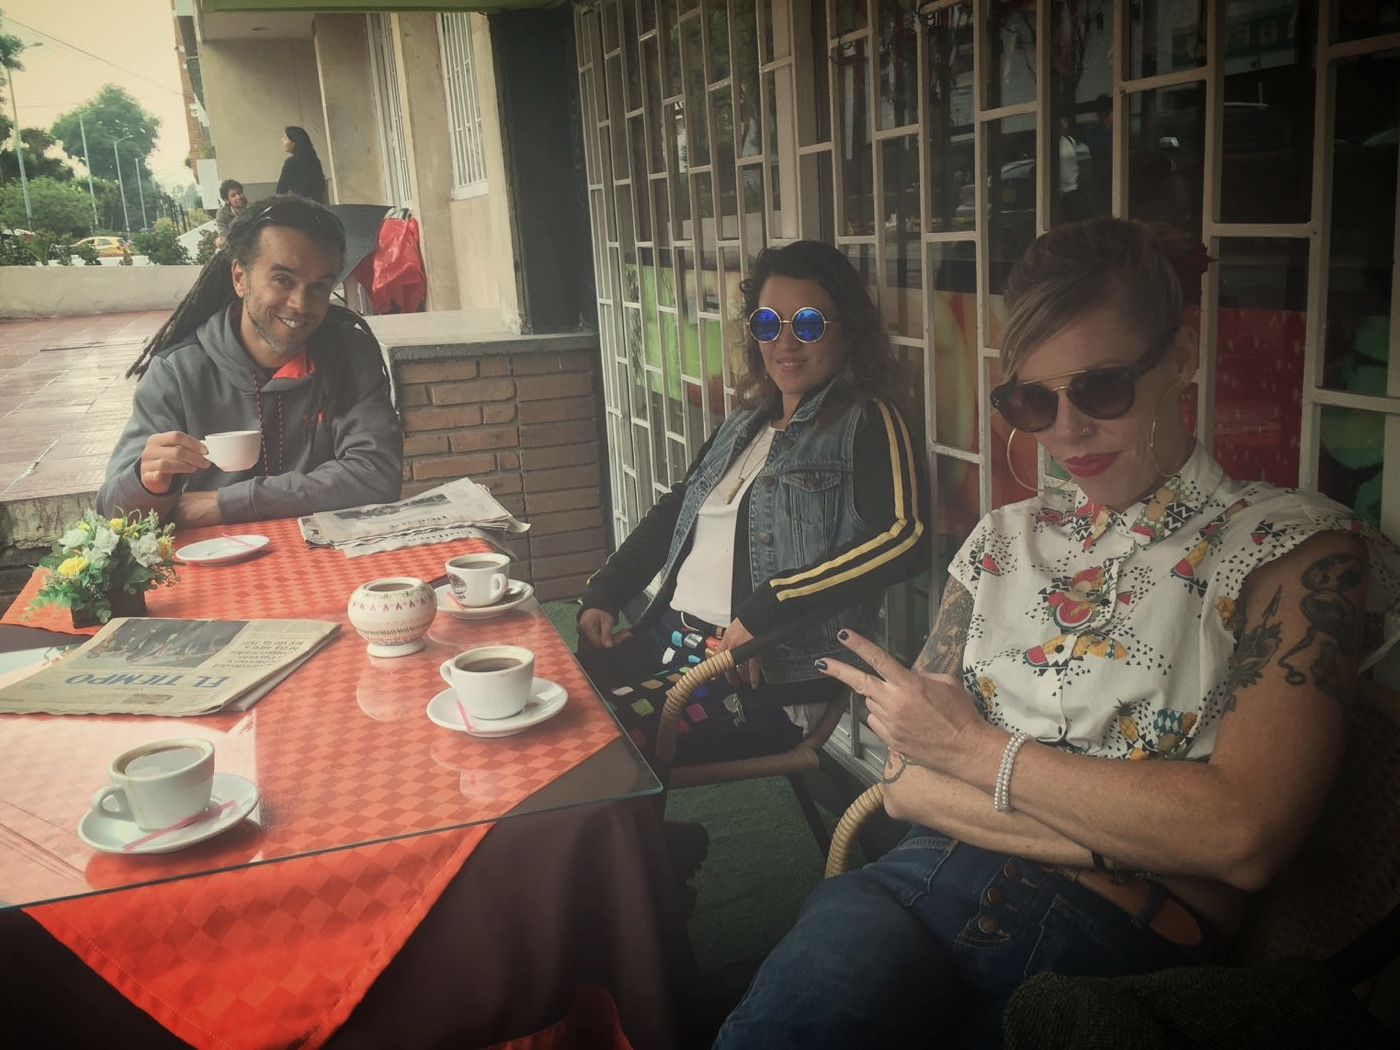 Coffee and friends, in search of music with Sarita